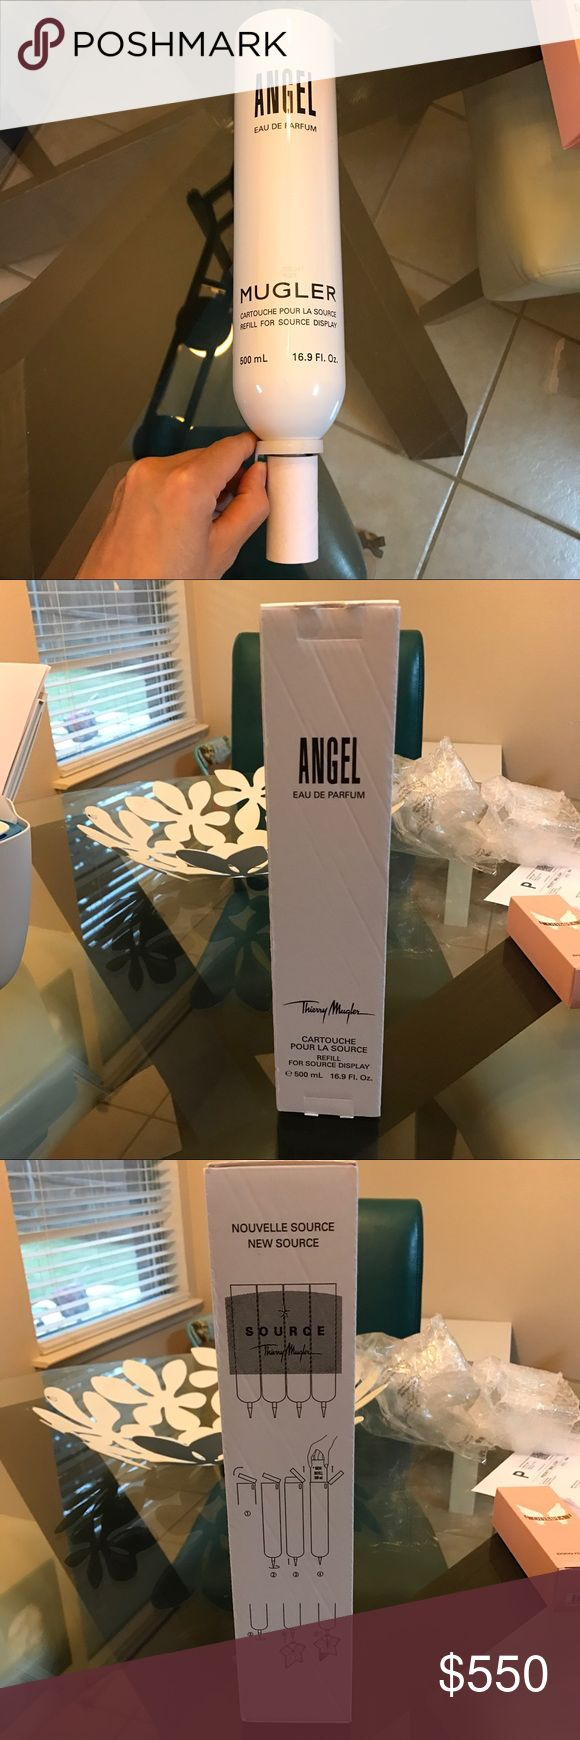 Angel refills 5 bottles Eau de perfum 500ml refills big bottle five times. Easy to use..  do it yourself. terry mugler Other